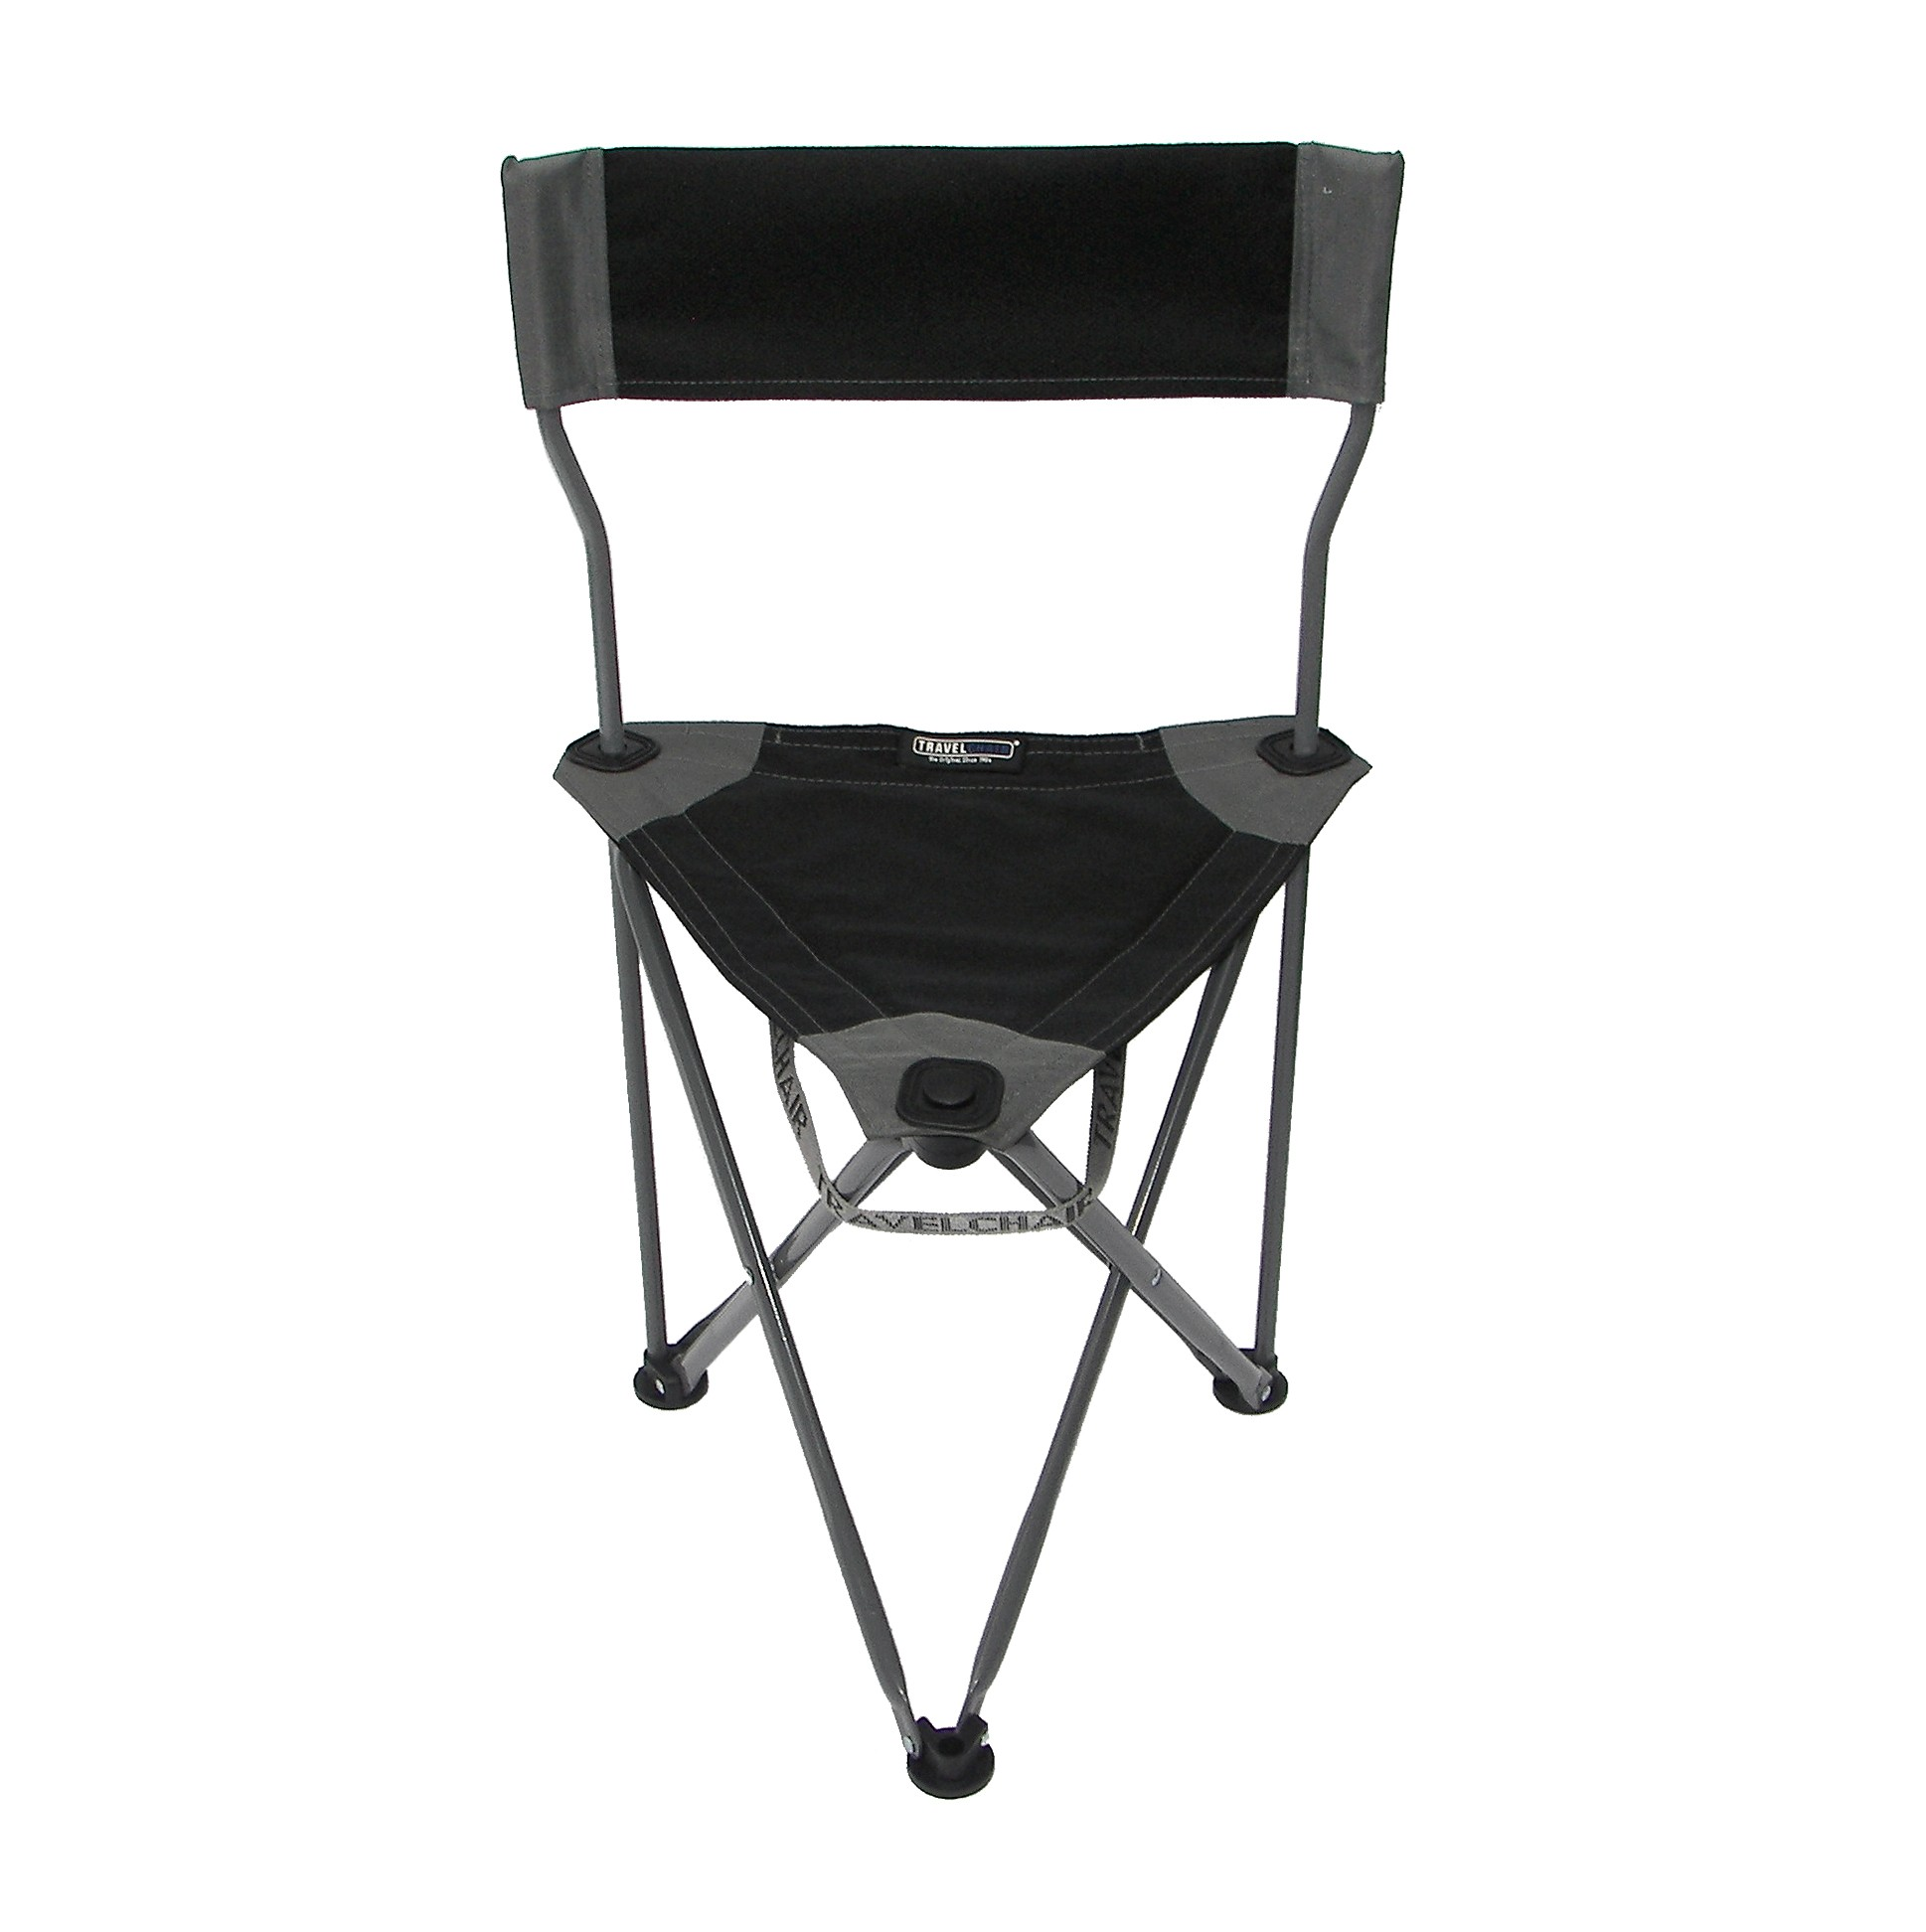 Travel Chair Travelchair Ultimate Slacker 2 1489v2 Portable Camping Stool